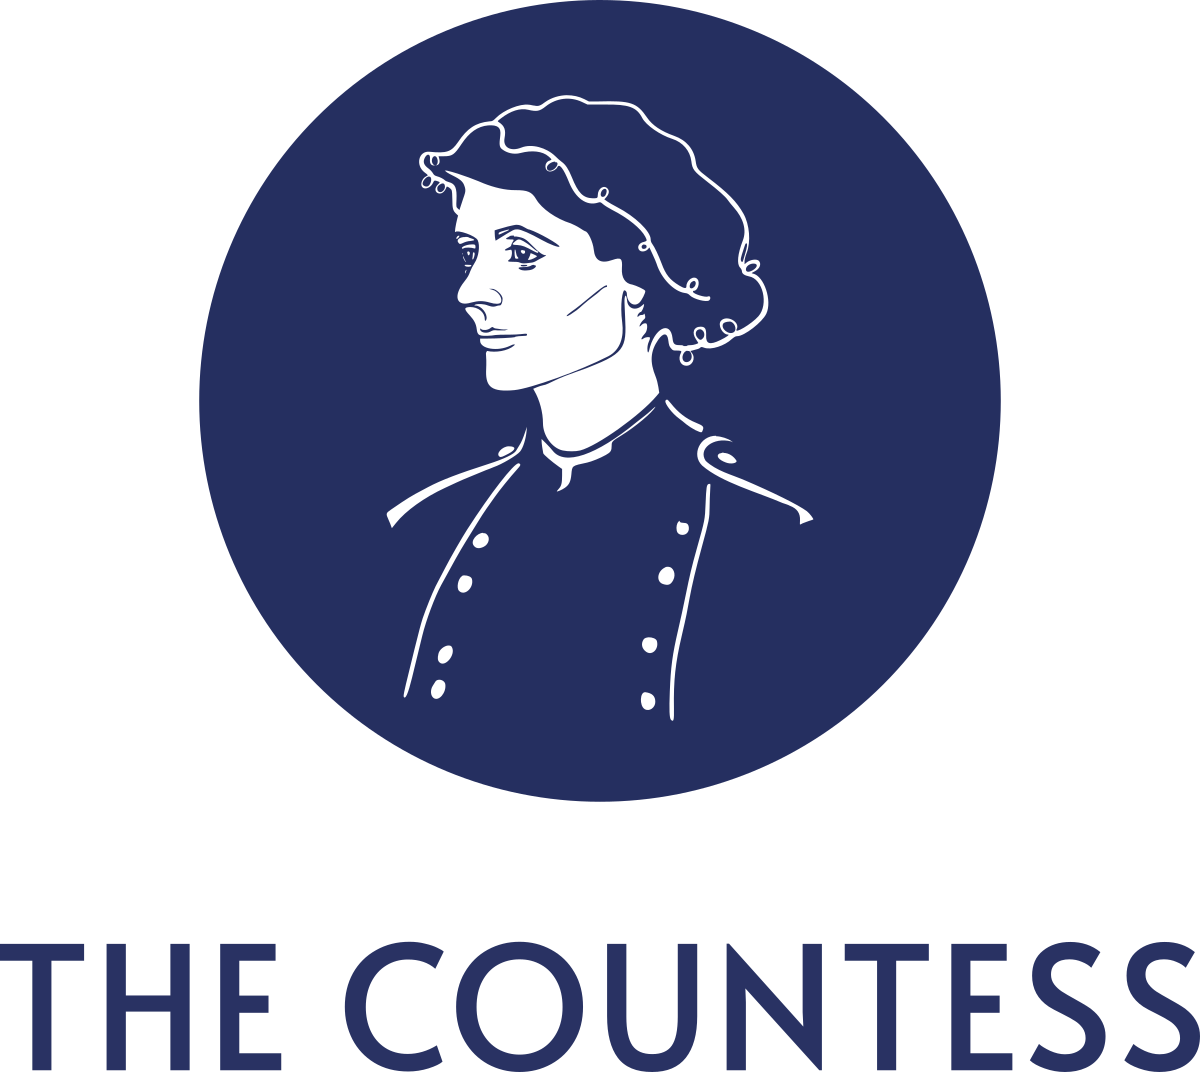 Logo comprising a line drawing of Countess Markiewicz in white against a blue circle, with 'The Countess' below